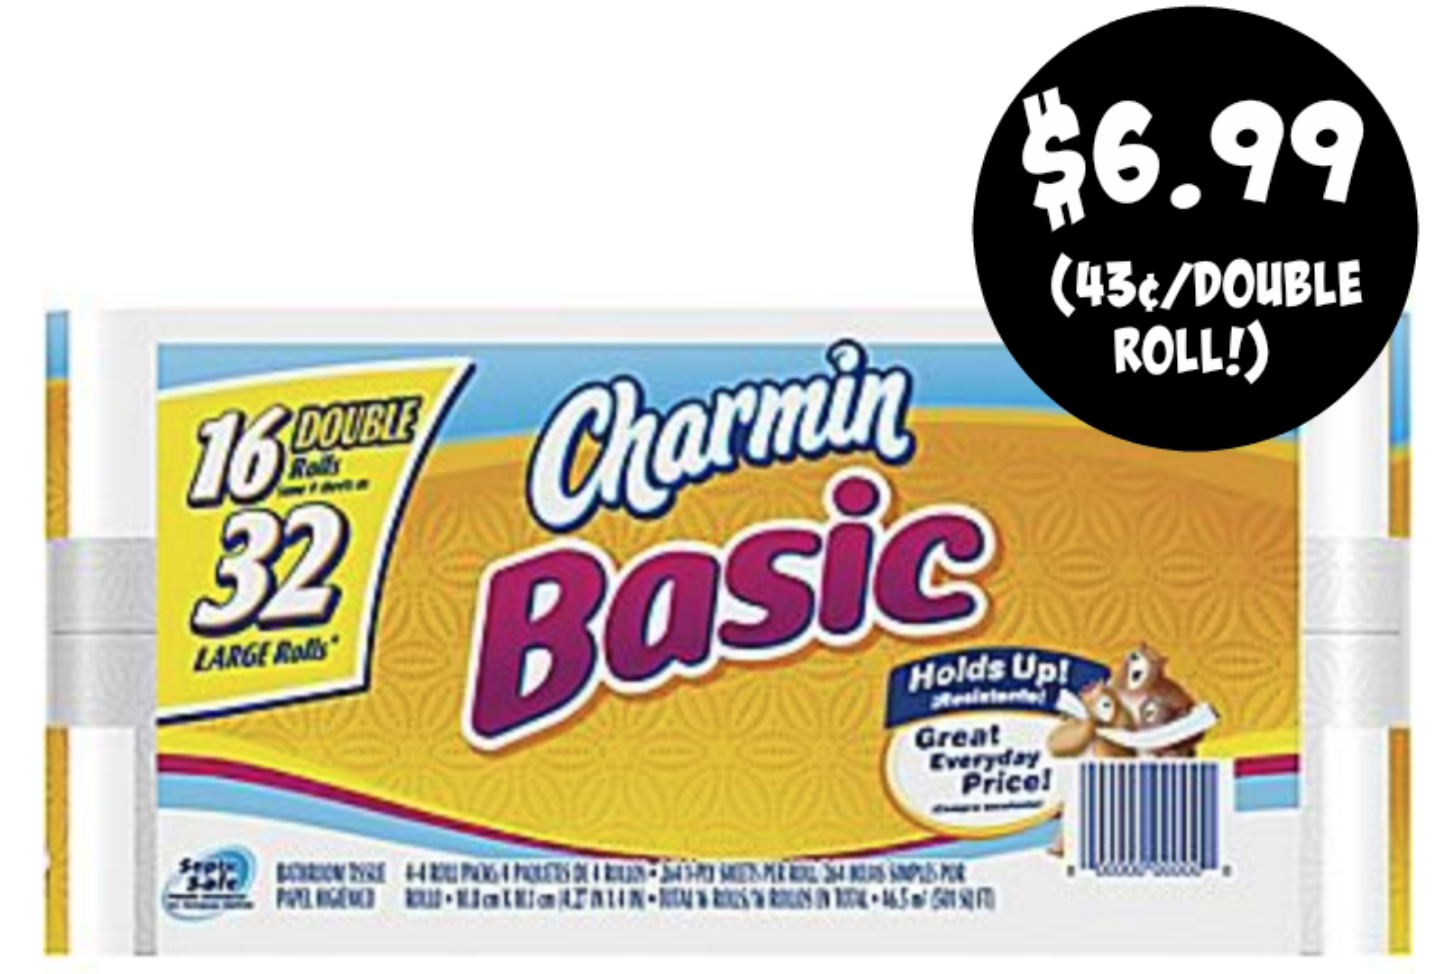 http://www.thebinderladies.com/2014/10/staplescom-16-pack-charmin-basic-double.html#.VD_mAUvdtbw